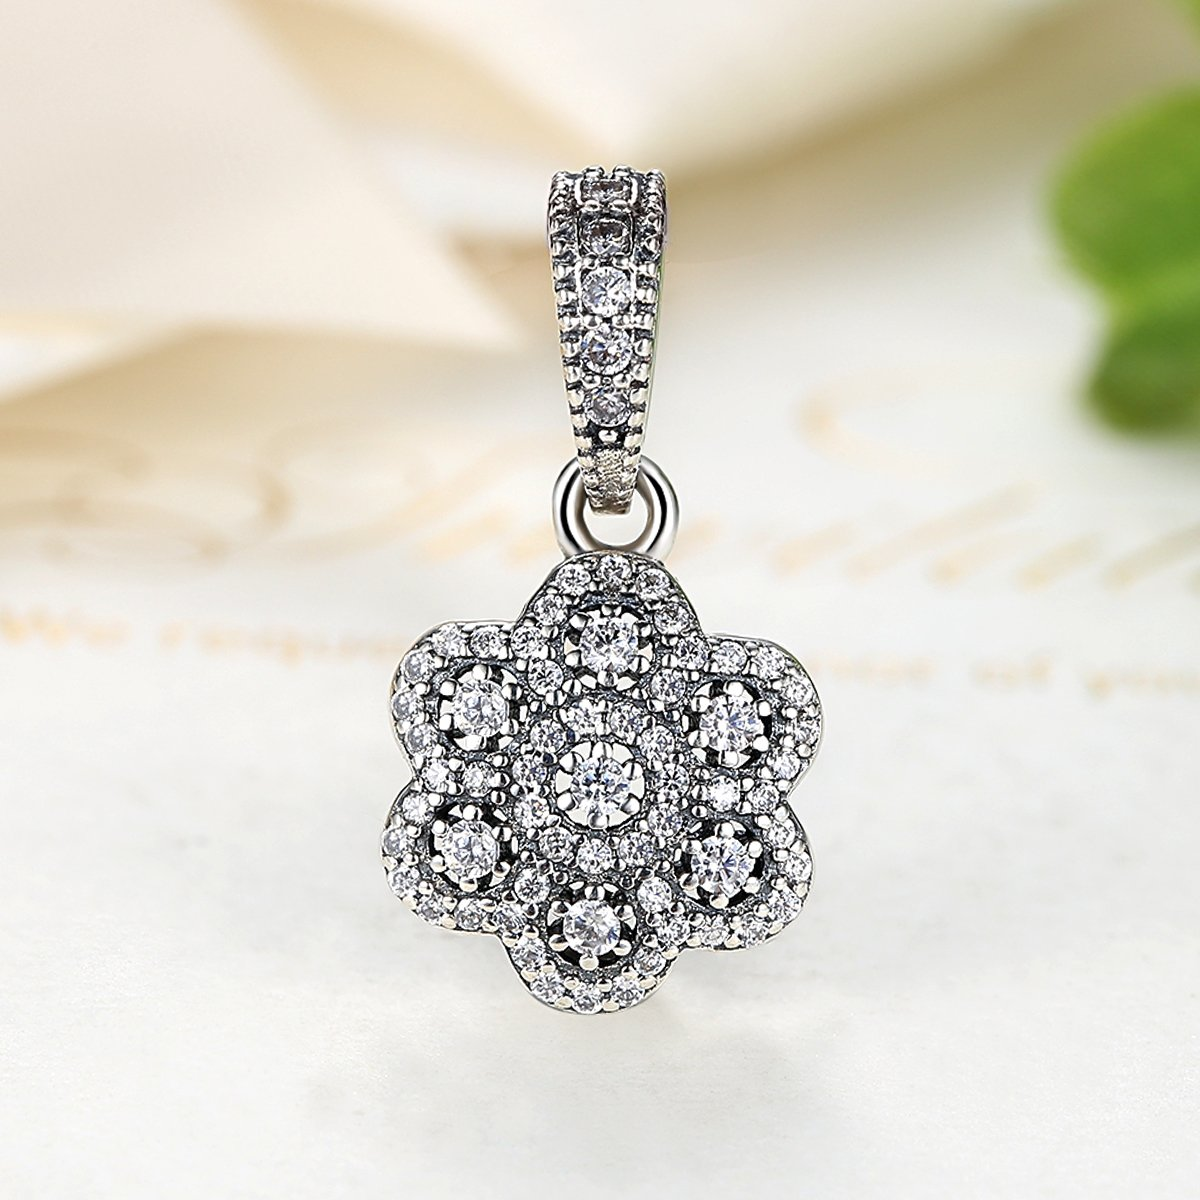 e1517e09b4f16 Crystalized Floral Clear CZ Dangle 925 Sterling Silver Bead Fits ...